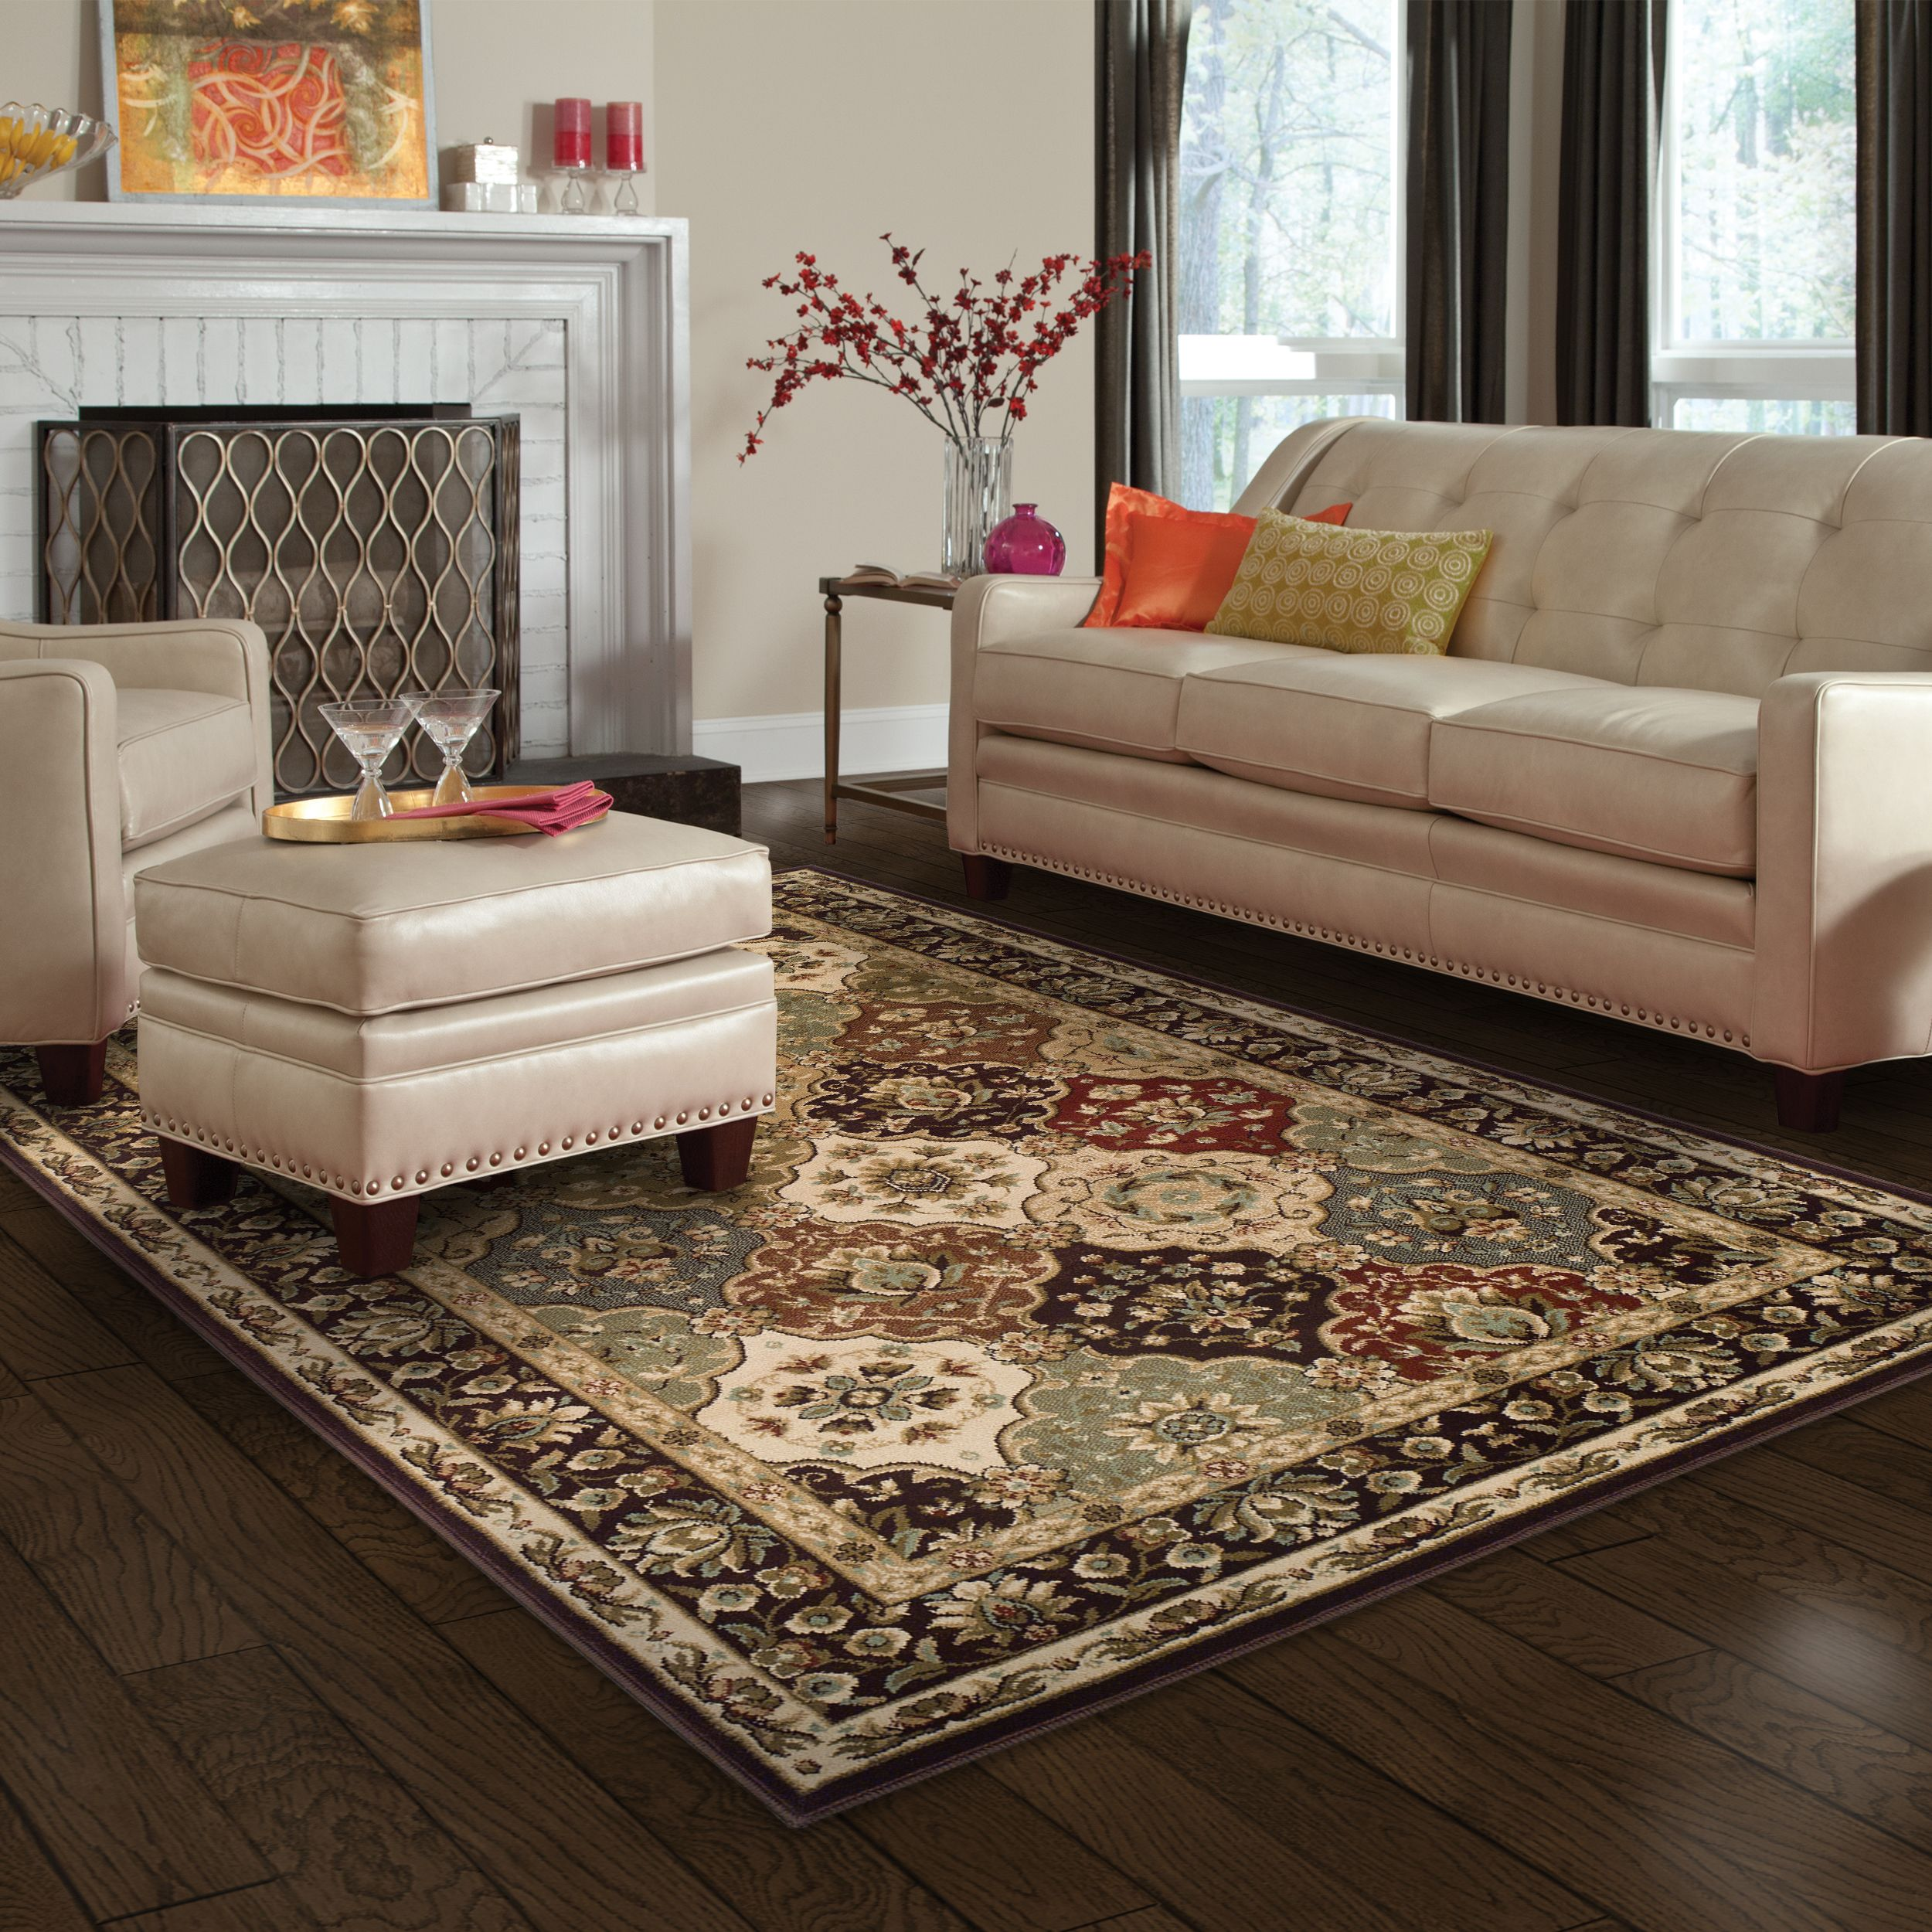 Best Selling 8 X 10 Area Rugs Under 100 Walmart Com